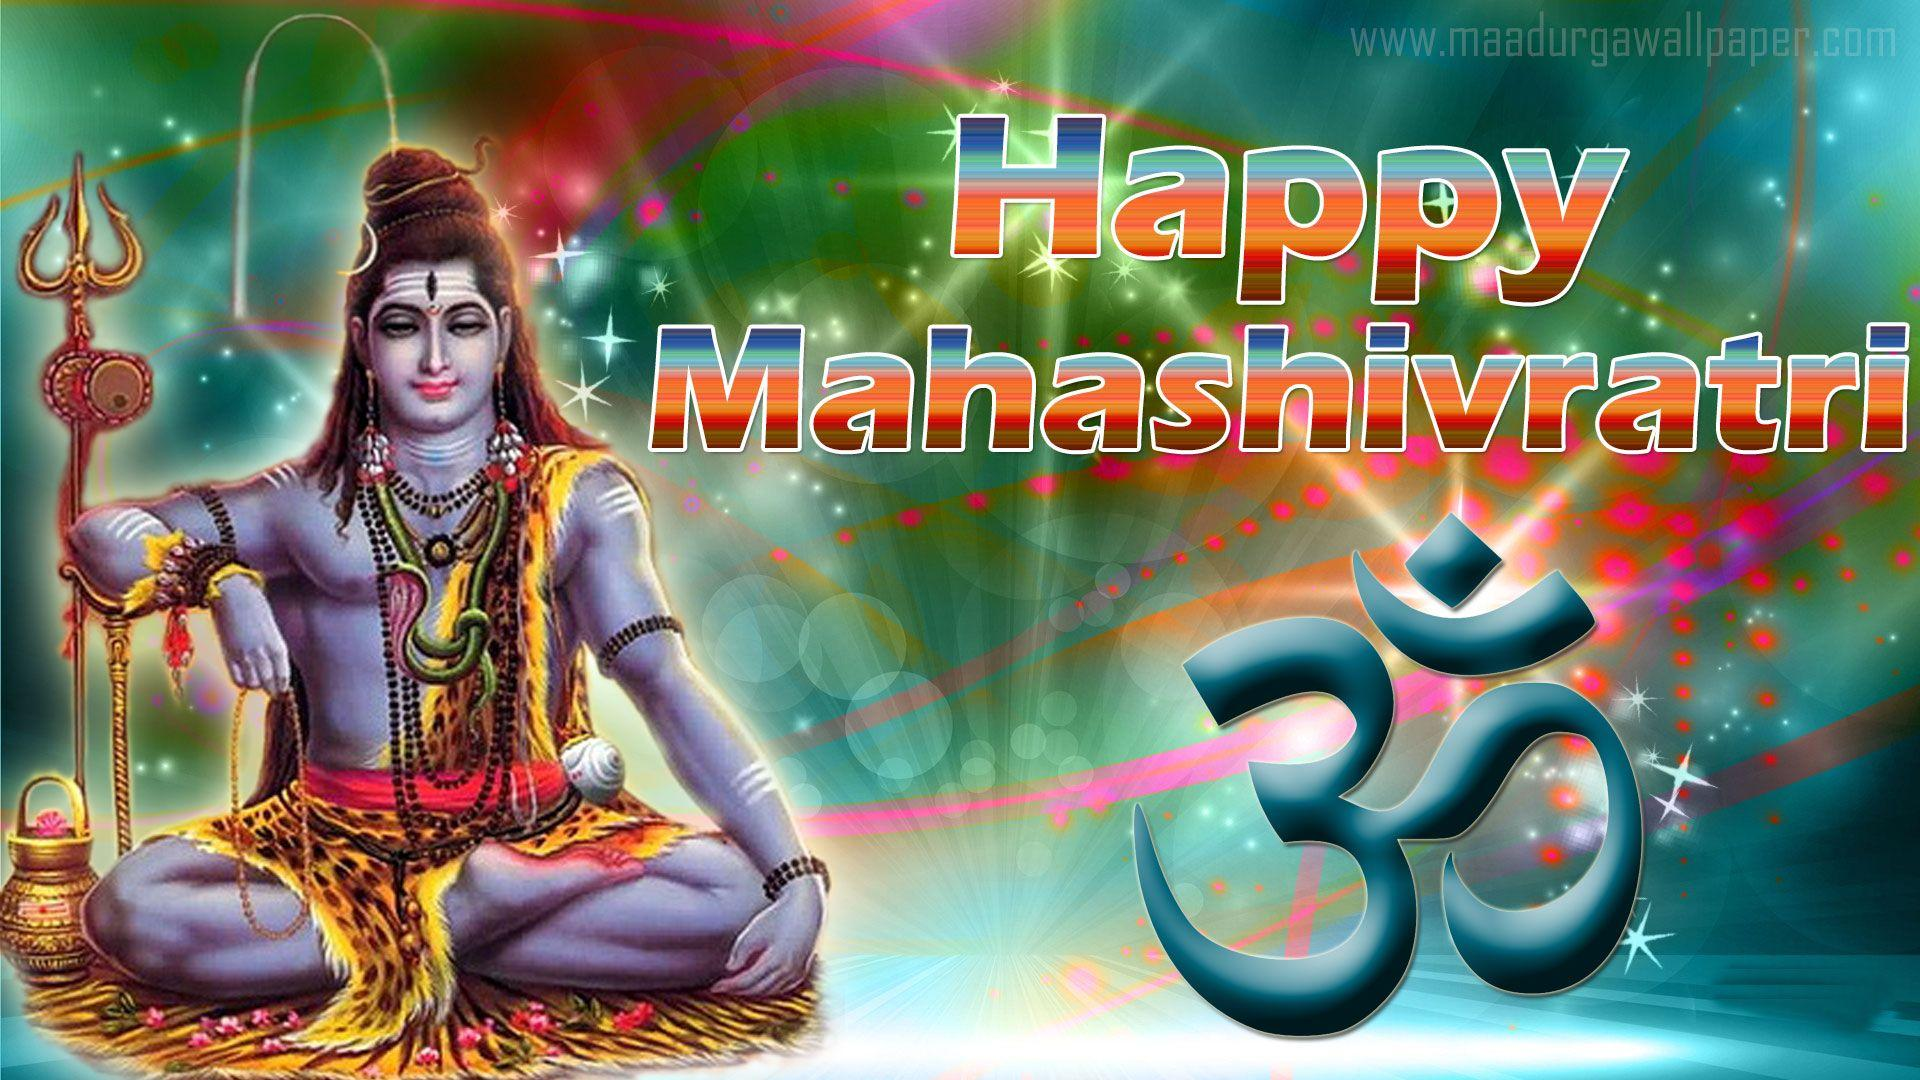 Maha Shivratri Best wallpaper & Shiva Images